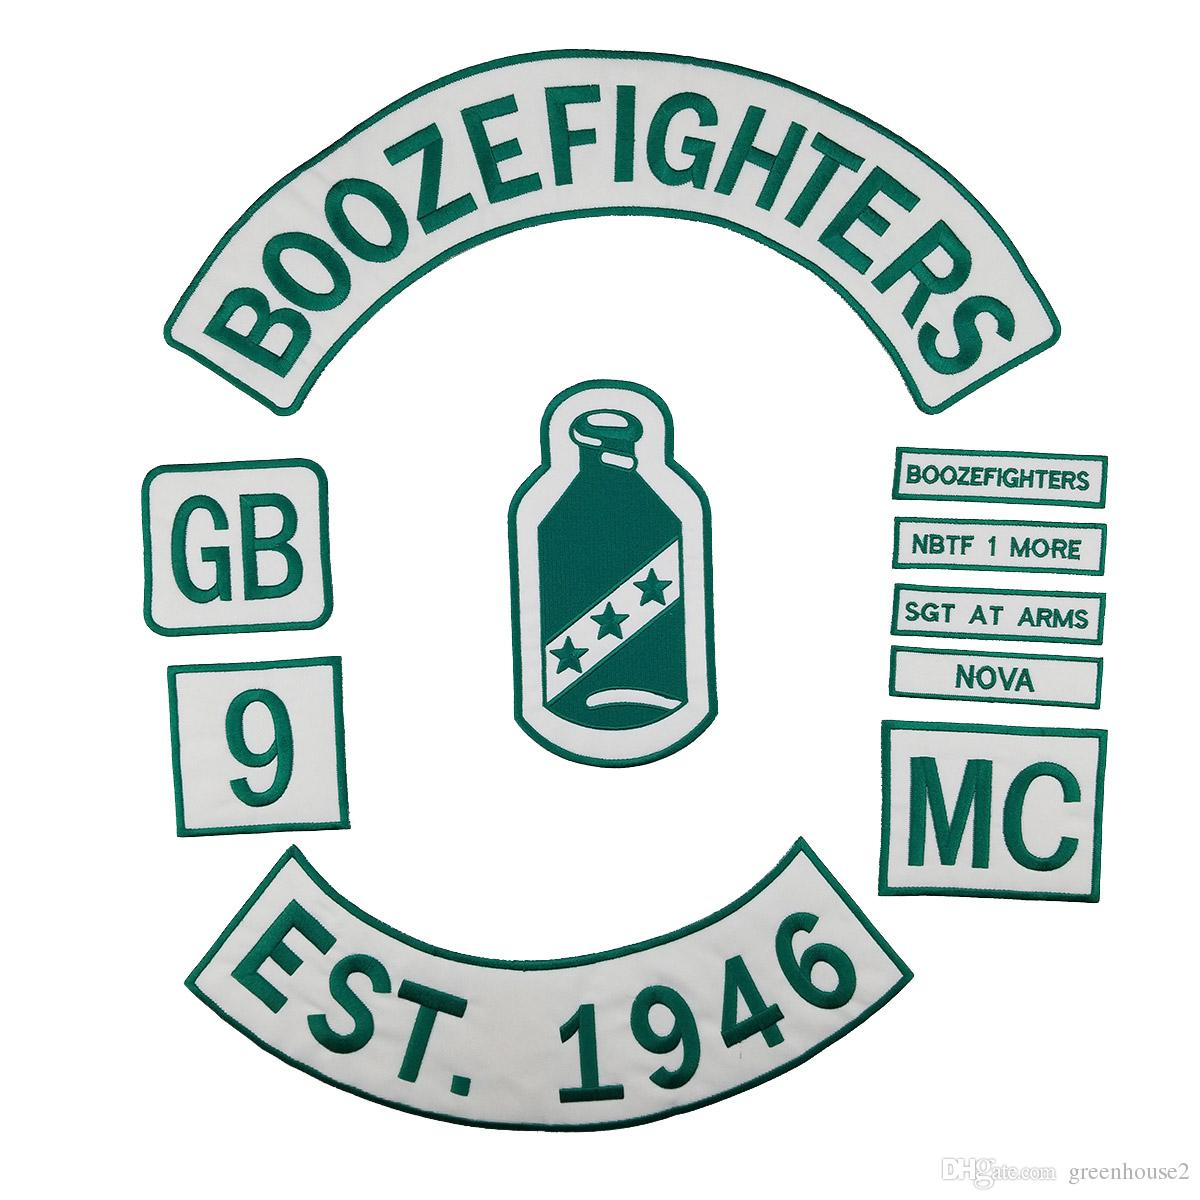 BOOZEFIGHTERS EST.1946 Motorcycle club Patch MC Embroidered Full Back Large Pattern For Rocker Biker Vest Patches for clothing Free Shipping